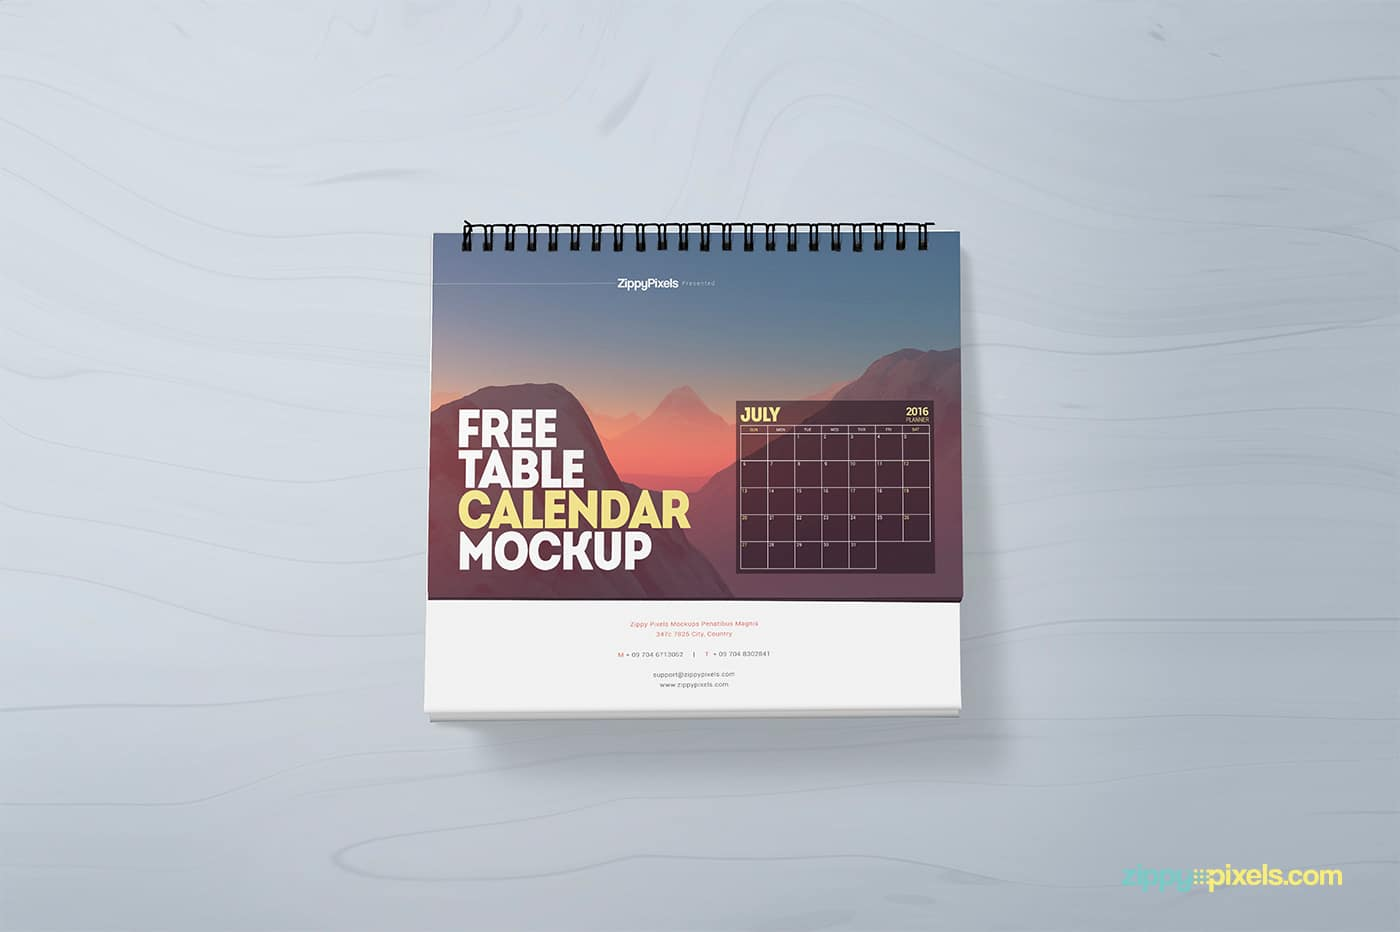 Design your poster free - You Ve Found The Perfect Portfolio For Your Projects Now You Have To Find A Way To Display Your Work That Is Professional And Visually Appealing